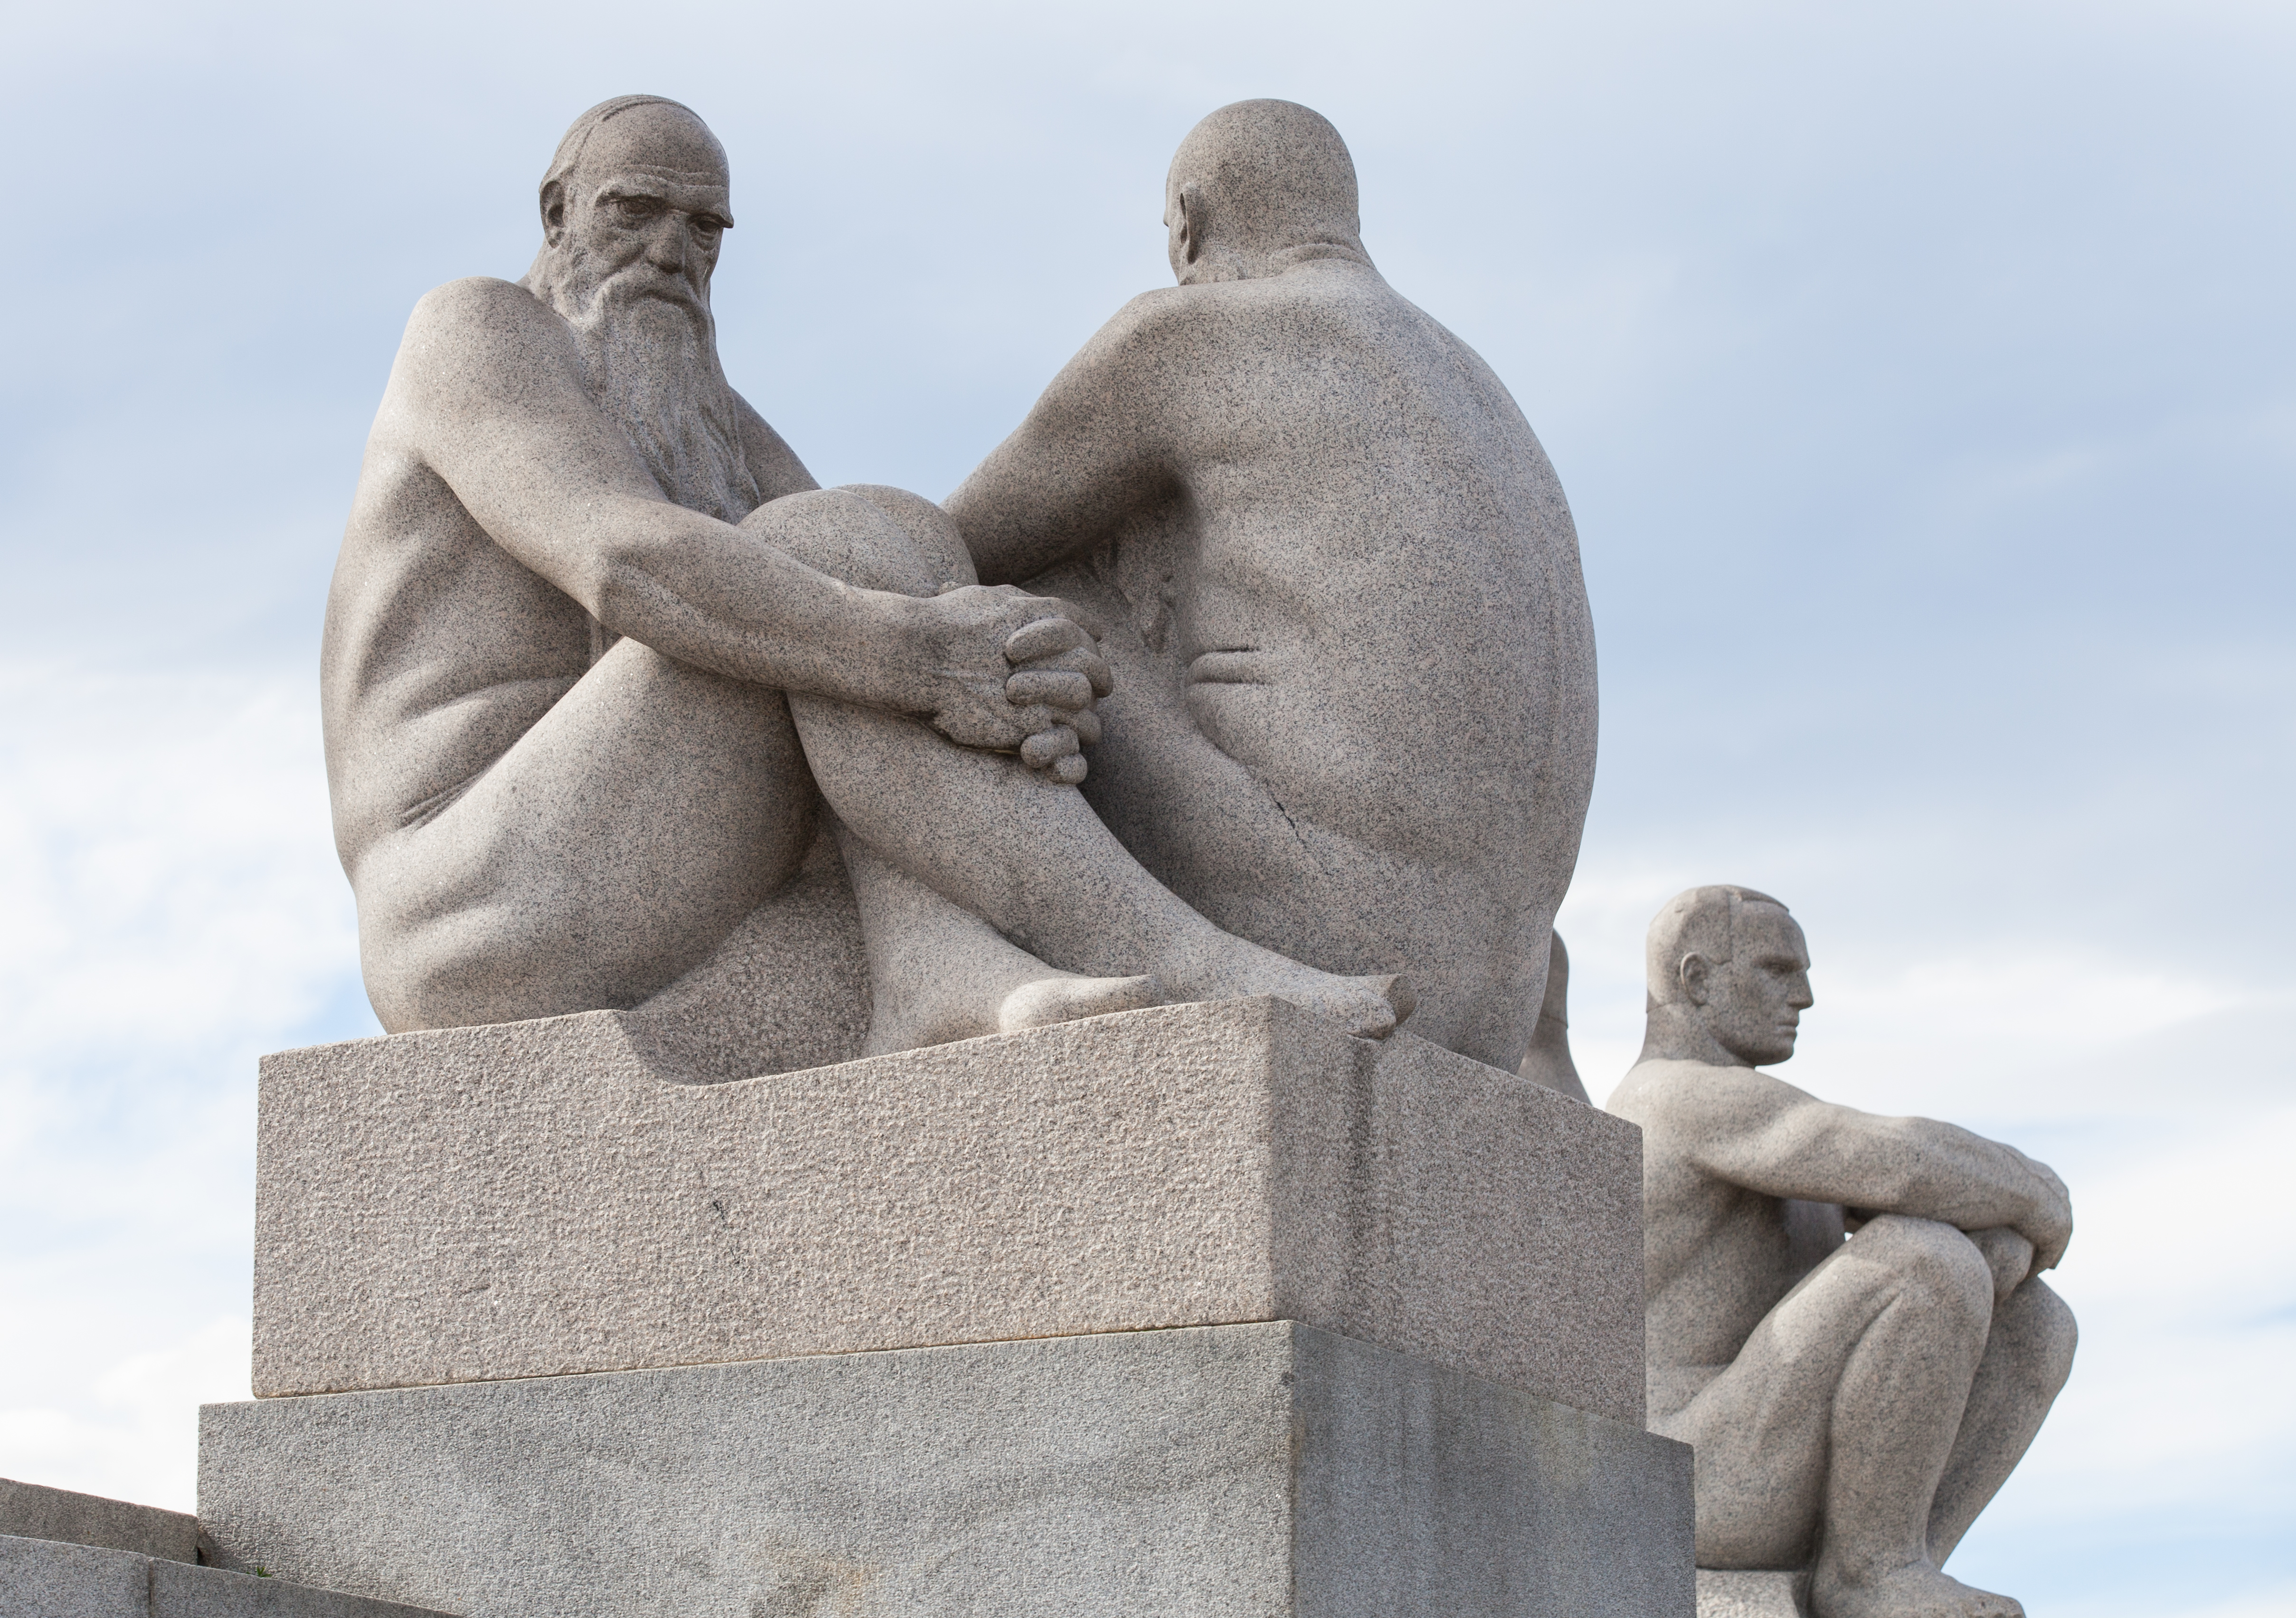 Vigeland park, Oslo, Norway, June 2014, picture 32